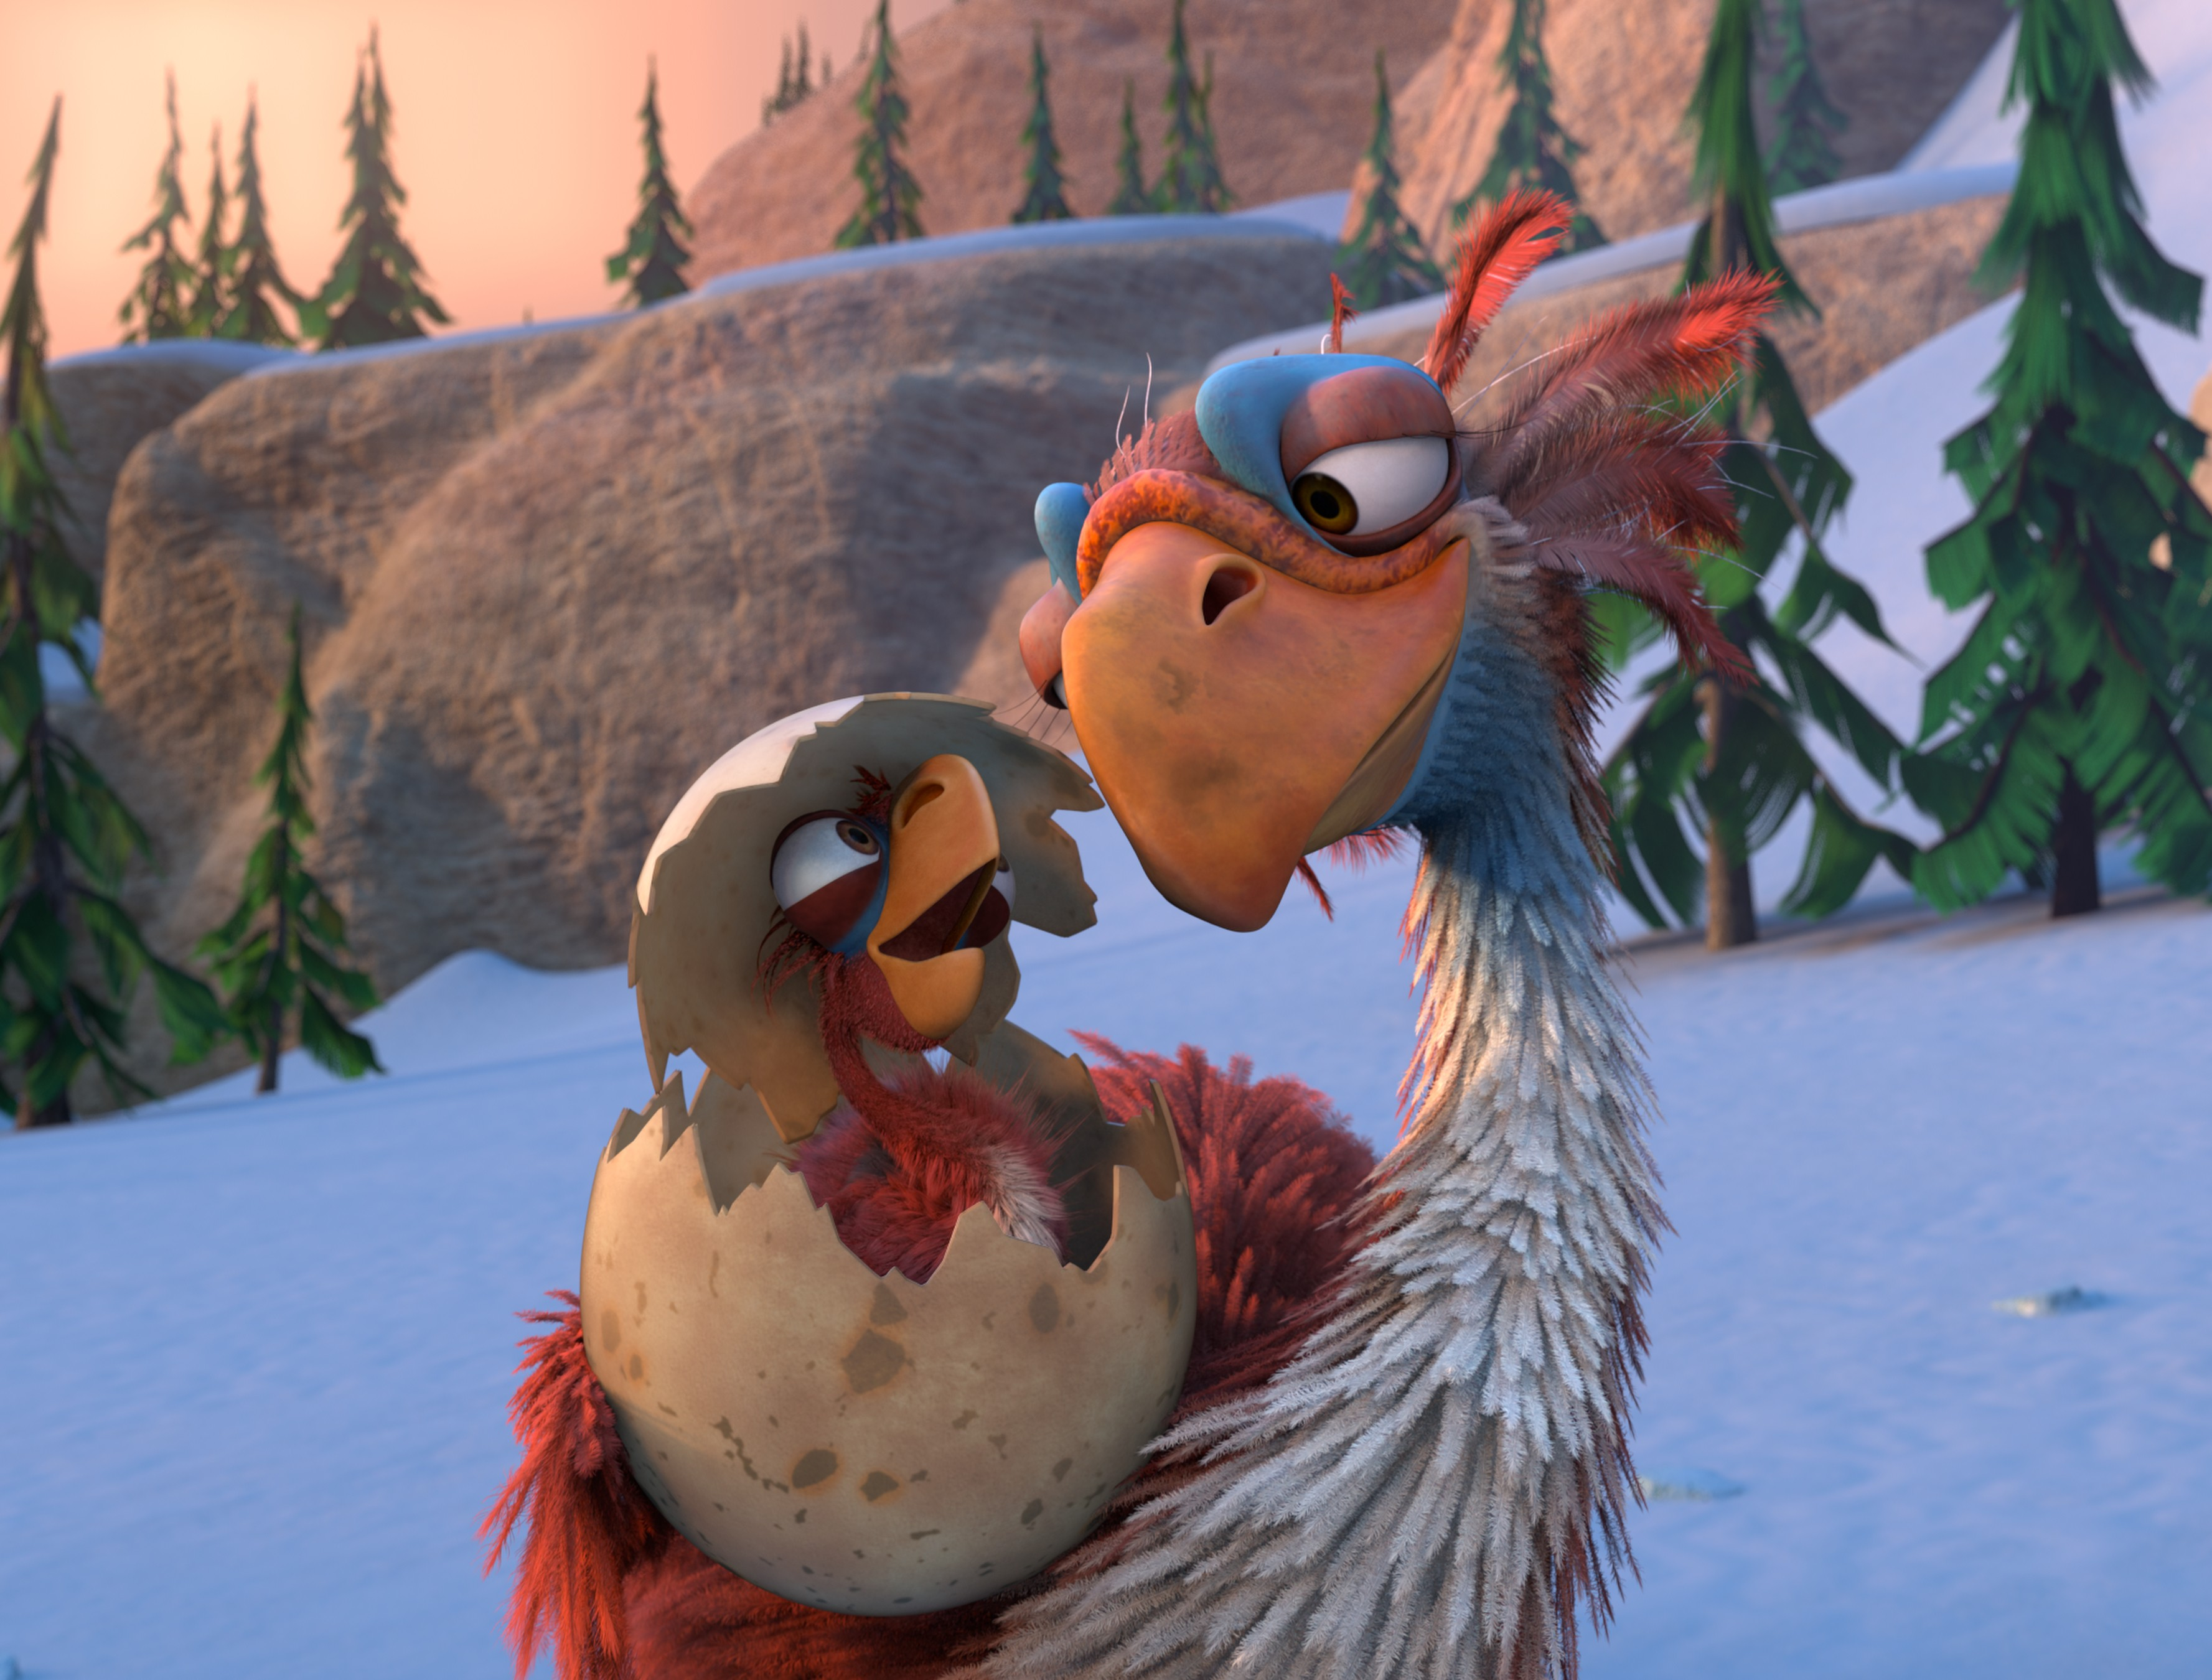 Cute Easter Egg Wallpaper Wallpaper Ice Age The Great Egg Birds Best Animations